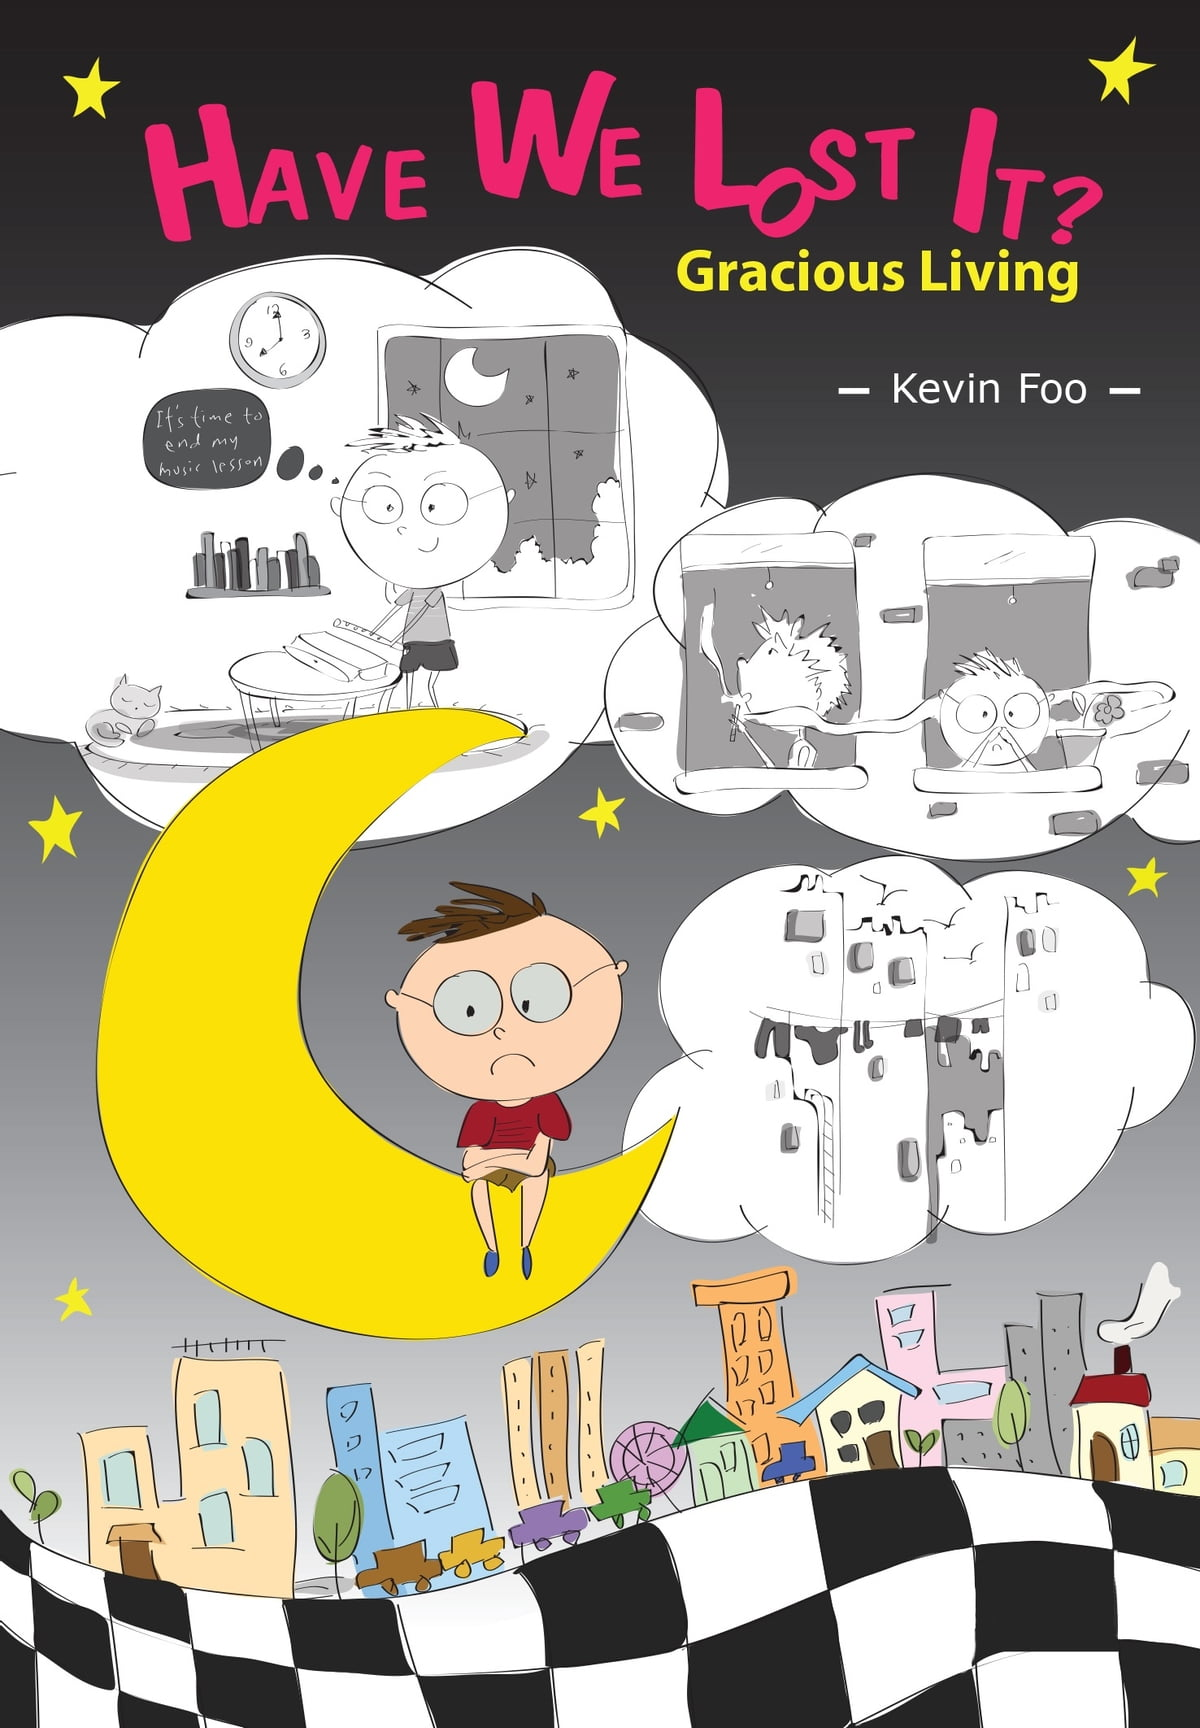 Have we lost it gracious living ebook by kevin foo have we lost it gracious living ebook by kevin foo 9789810717087 rakuten kobo fandeluxe Image collections